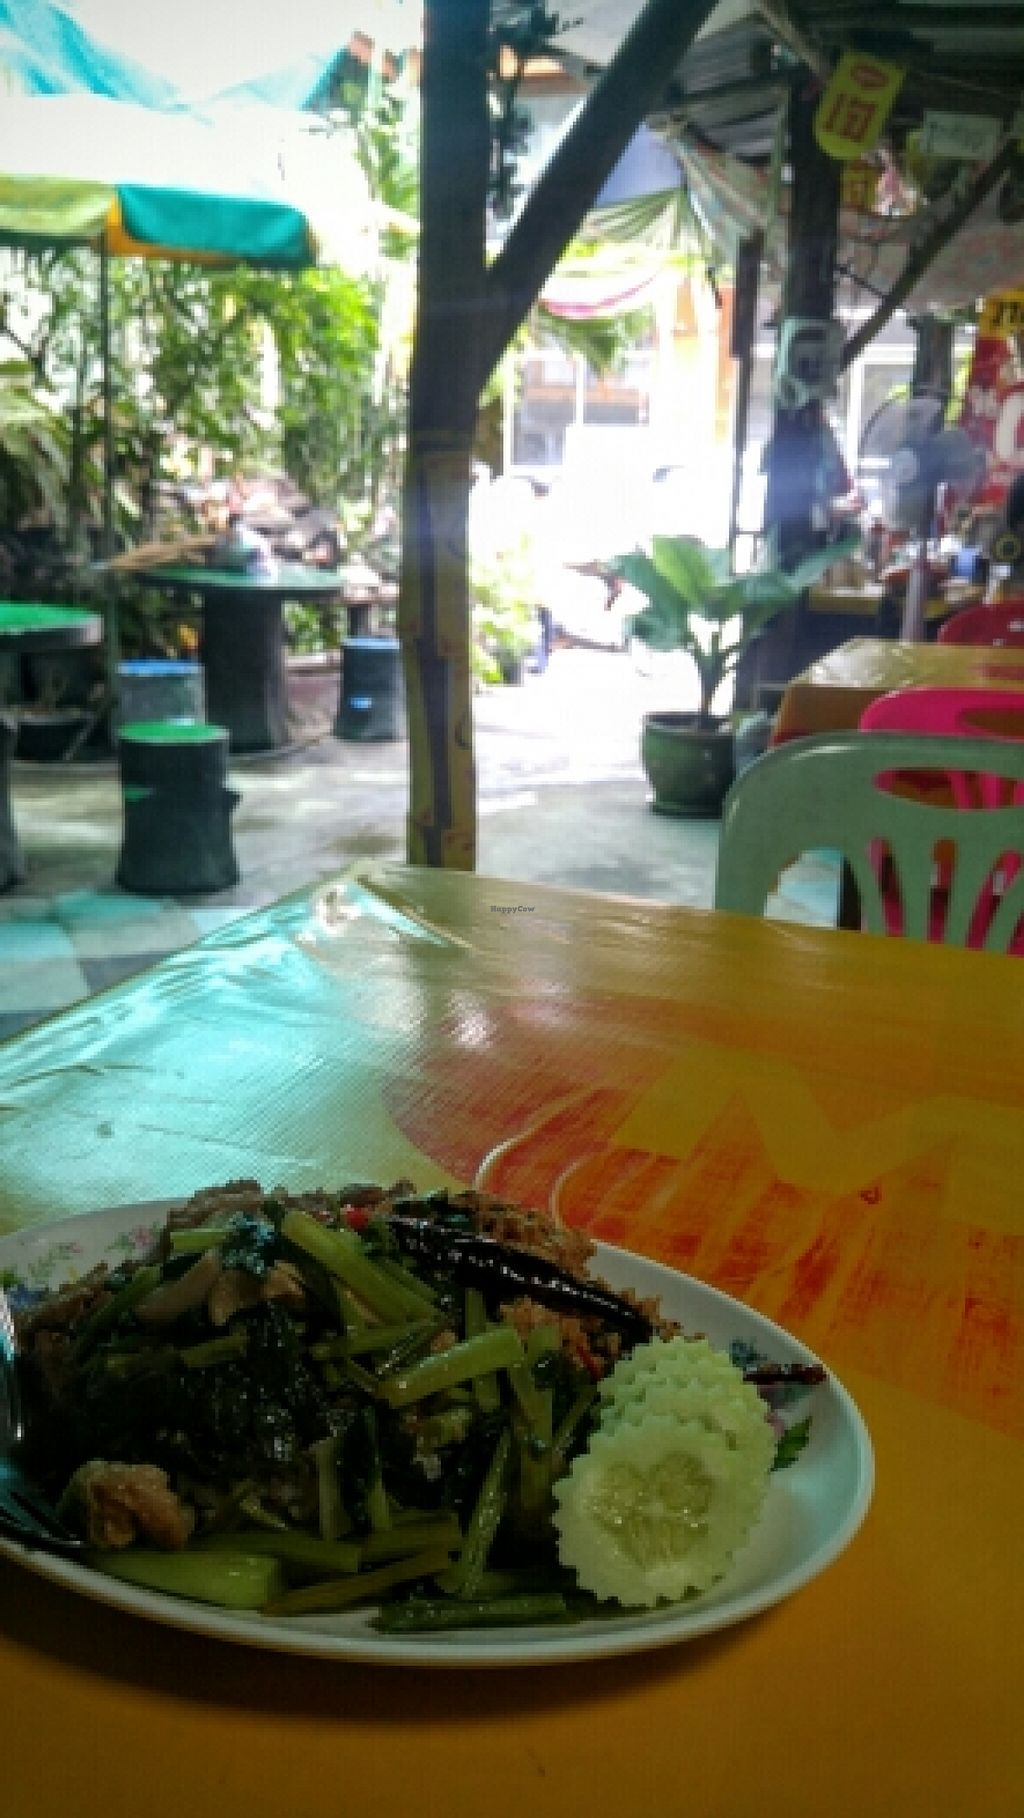 "Photo of Vegetarian Restaurant  by <a href=""/members/profile/bnom"">bnom</a> <br/>inside <br/> June 7, 2016  - <a href='/contact/abuse/image/43776/152713'>Report</a>"